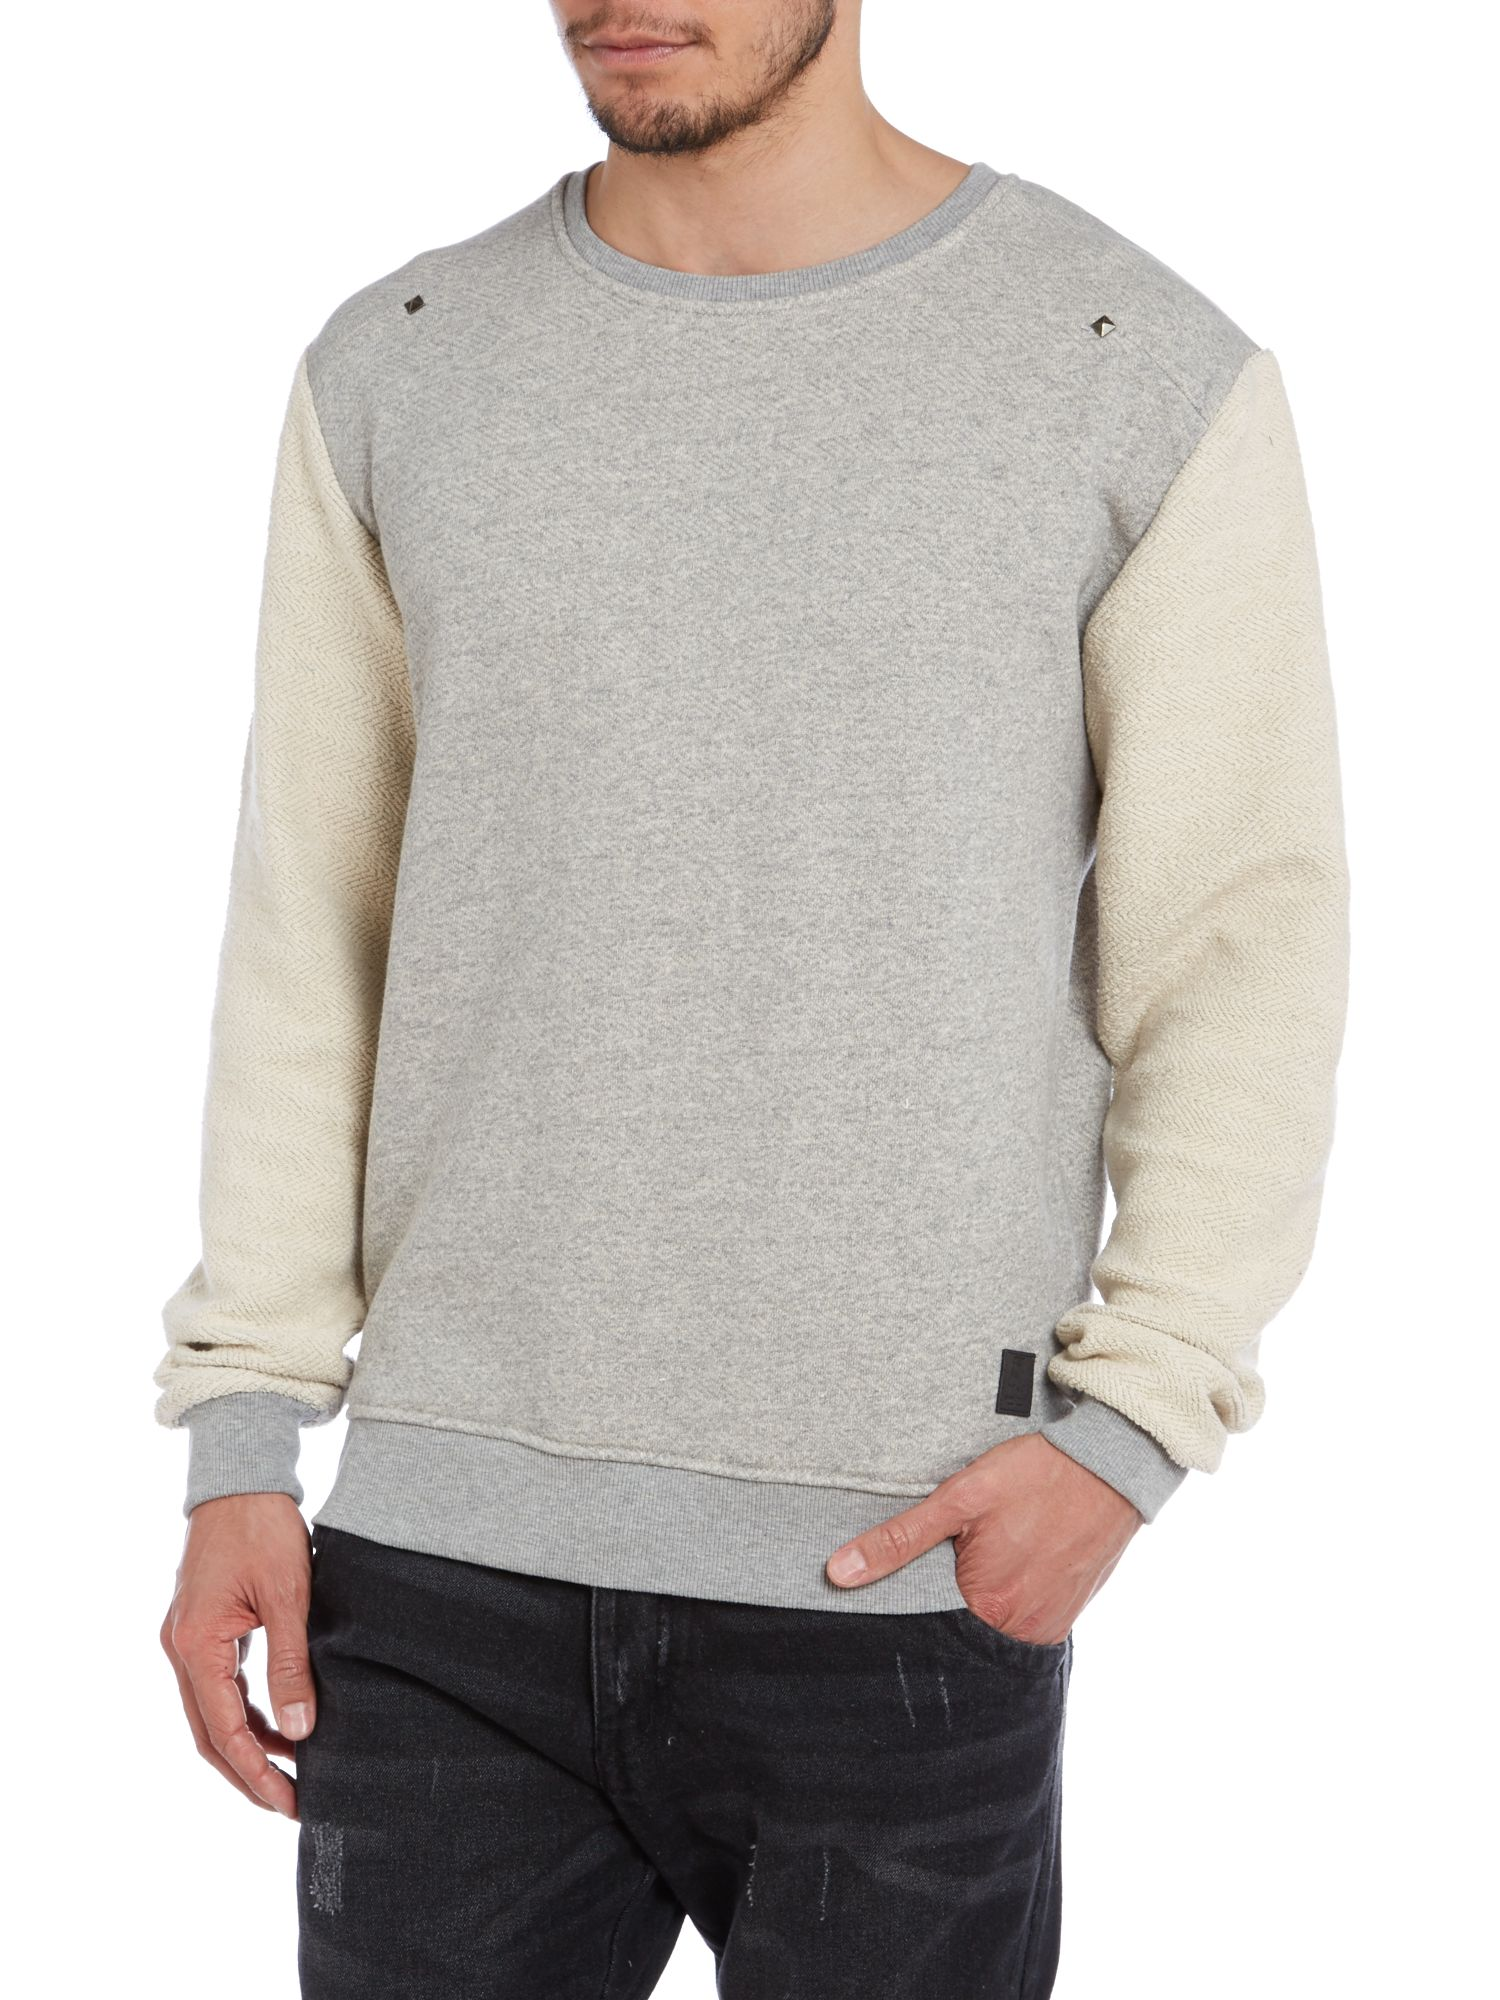 Fleece sleeves sweatshirt